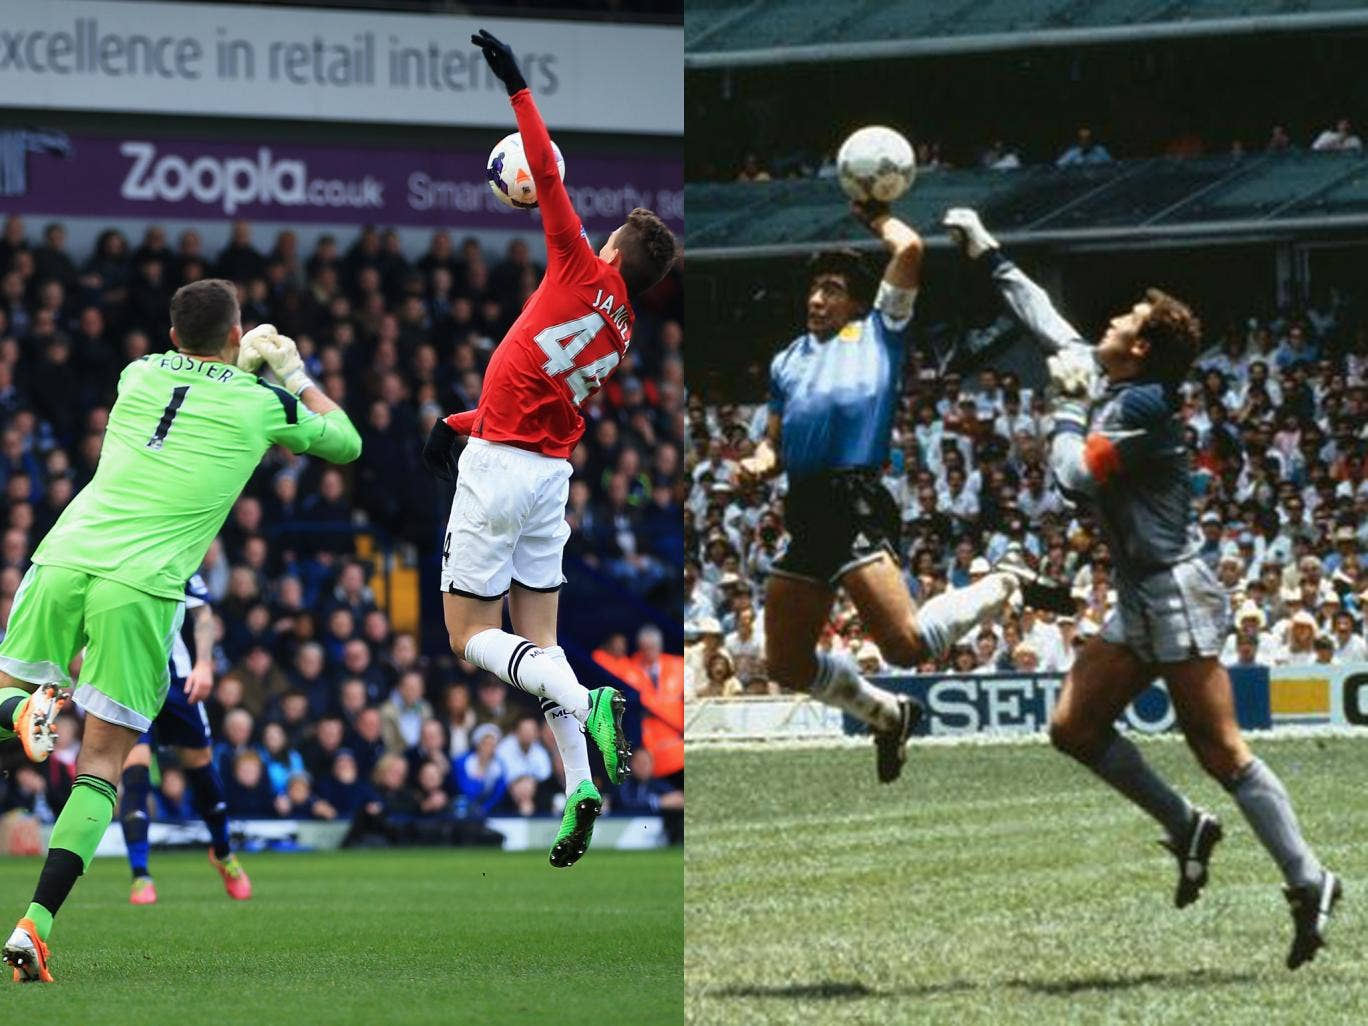 Adnan Januzaj was booked for his hand ball when trying to round West Brom goalkeeper Ben Foster, in a near-replica to Diego Maradona's 'Hand of God' against England in 1986